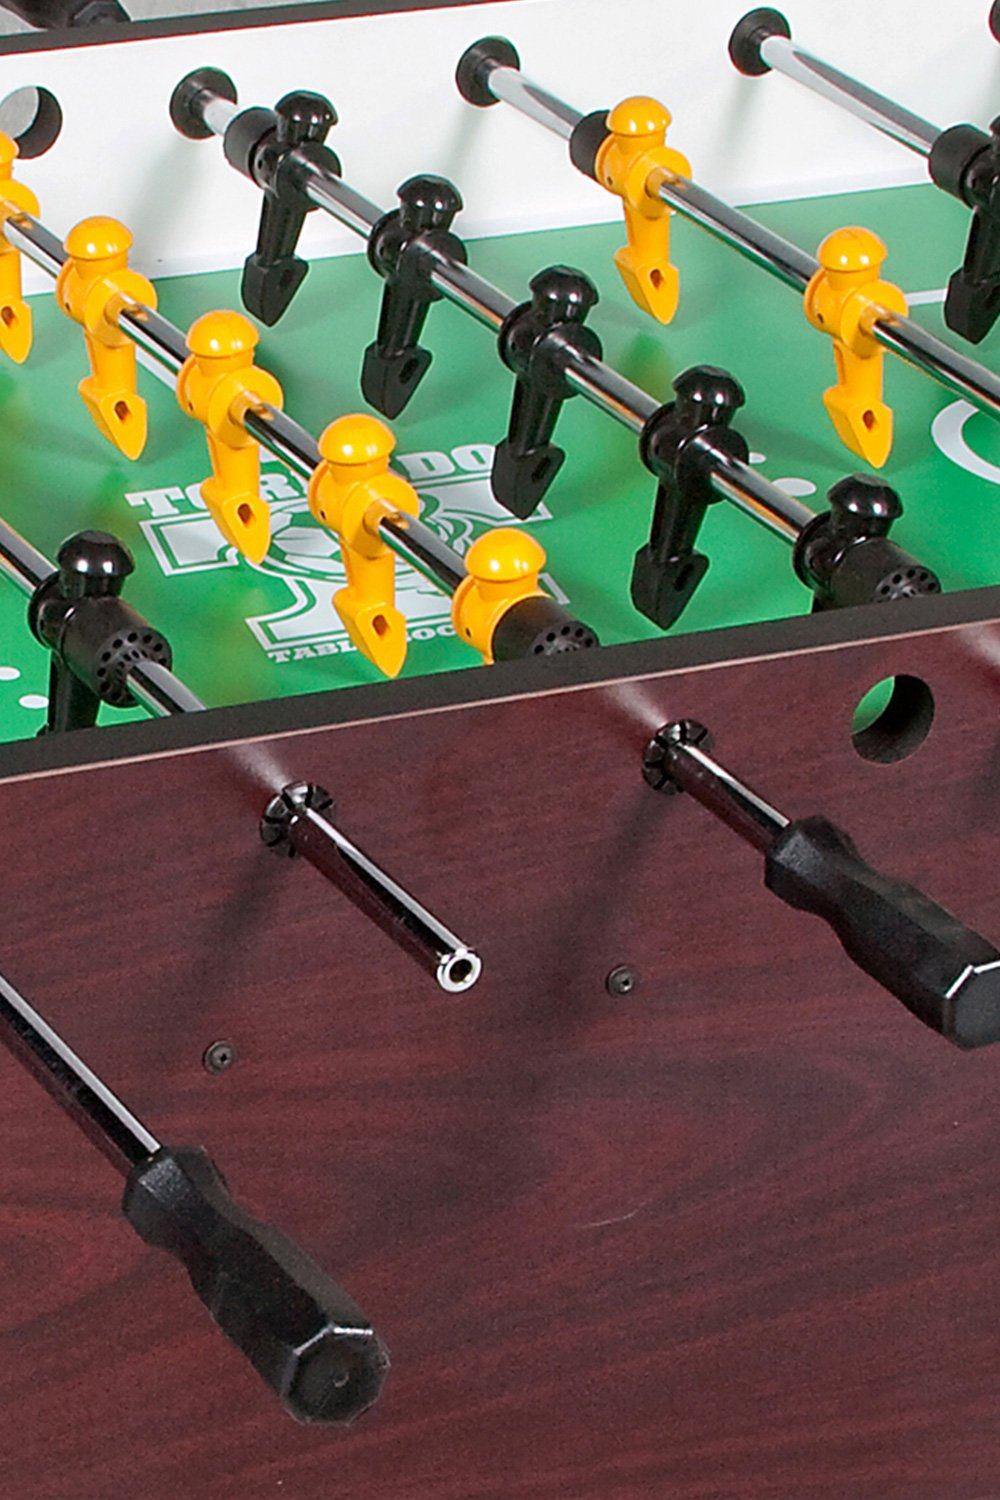 Patented Tornado Men Ball Control Sport Professional Foosball Table. Made in America. Mahogany Melamine from Schmidt Billiards and Game Rooms in Columbia, MO